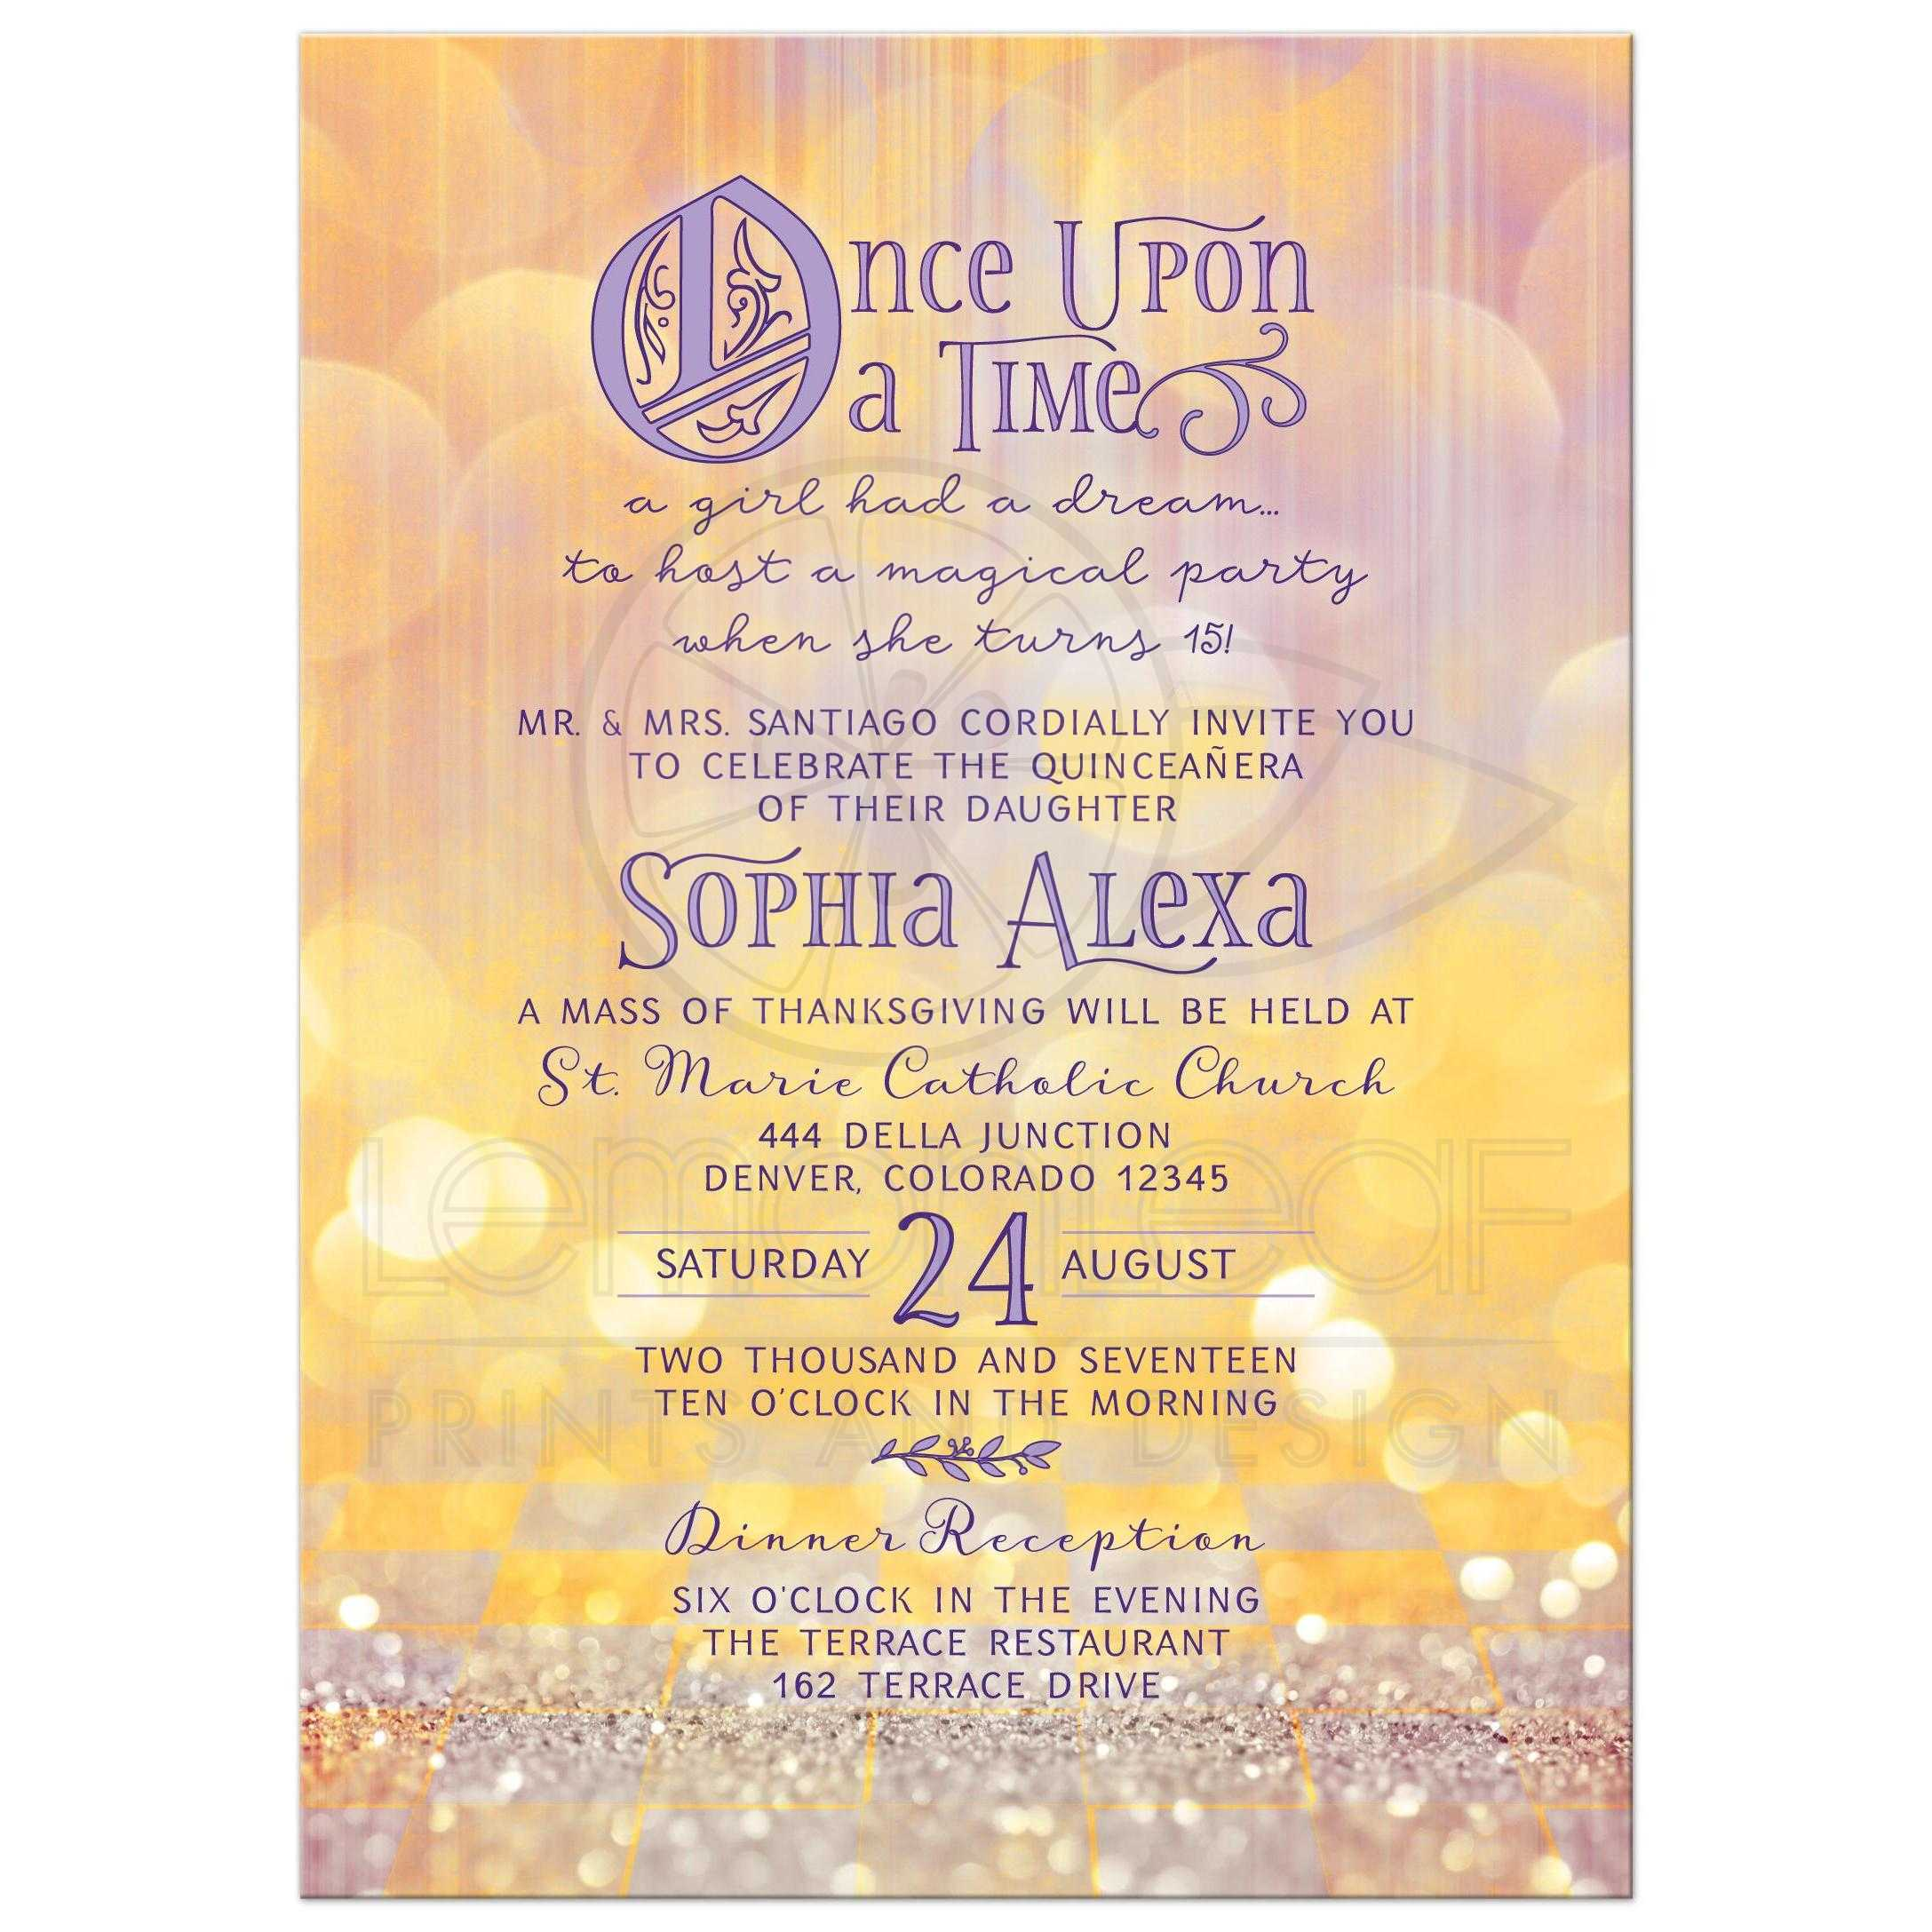 Quinceaera Invitation Magical Ballroom Once Upon a Time